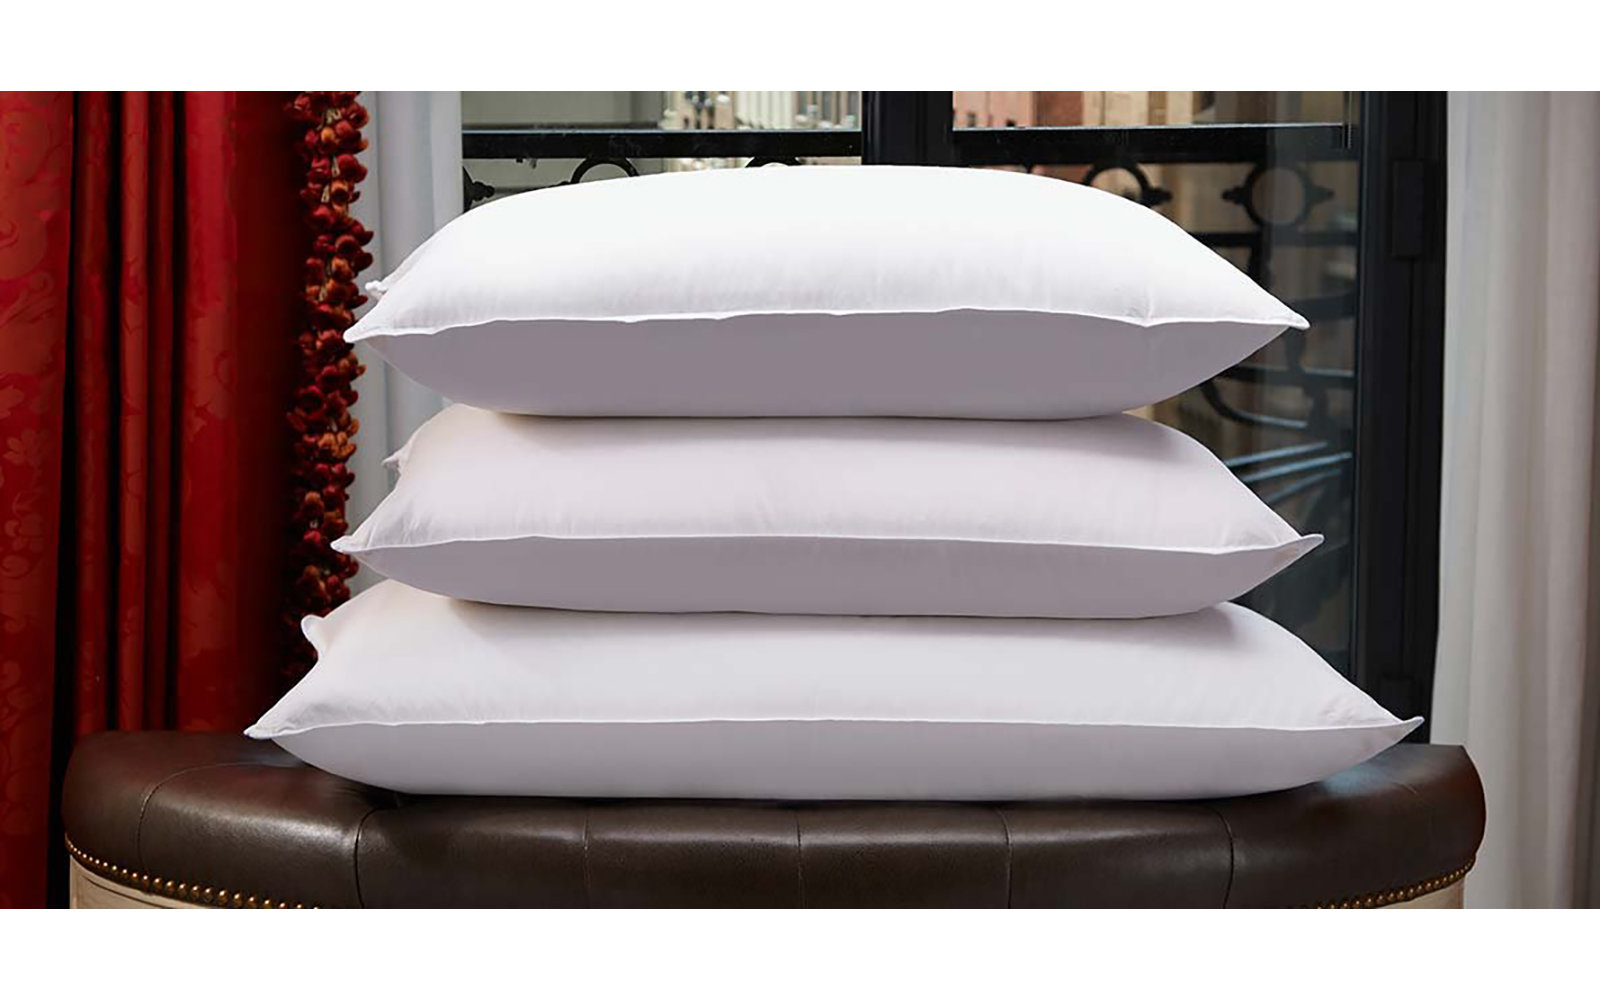 St. Regis Hotel Pillows